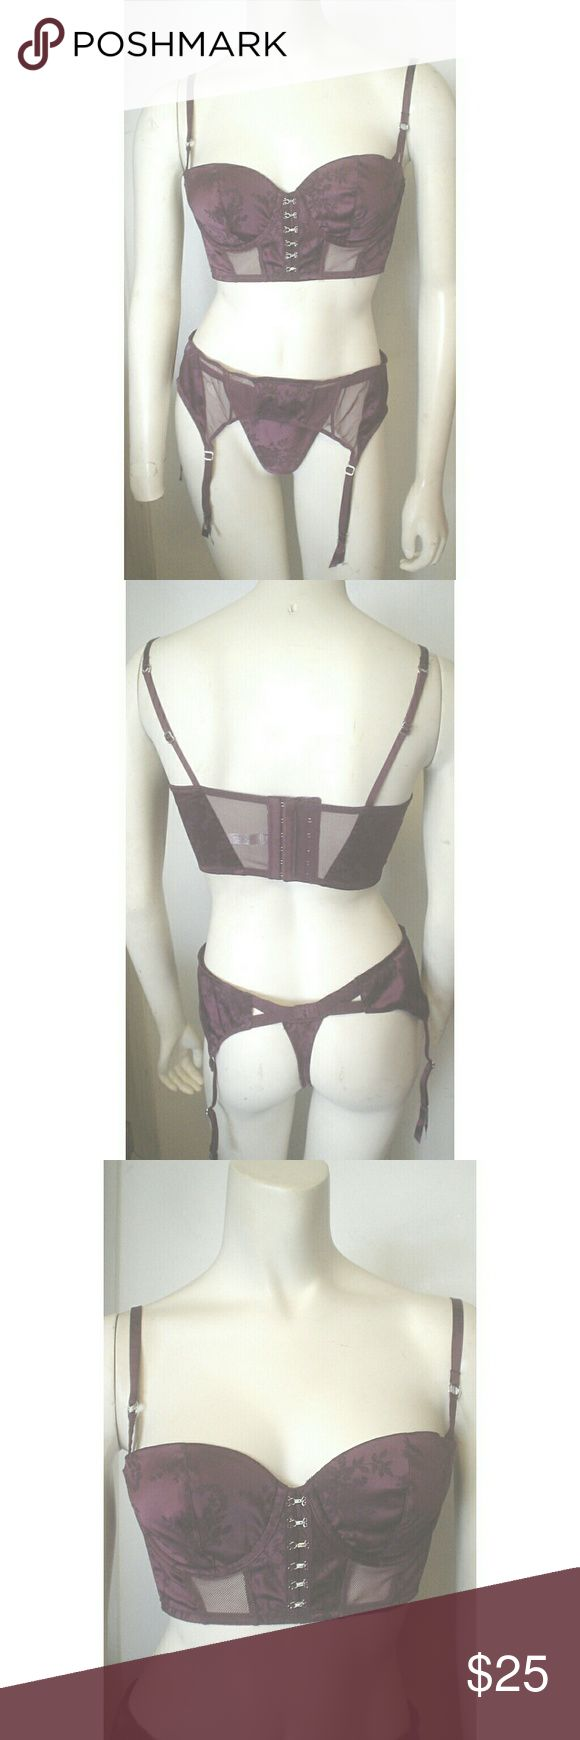 Victoria's Secret Eggplant Bra Panties Garter M EC Victoria's Secret  Eggplant / Purple Bra / Panties / Garter Matched Set Sexy  Size Medium  Perfect for Valentine's Day! (Automatic Priority Mail if purchased before February 10!)  I have inspected the set and found no rips, stains or flaws.   Thank you for checking out my item! Victoria's Secret Intimates & Sleepwear Bras